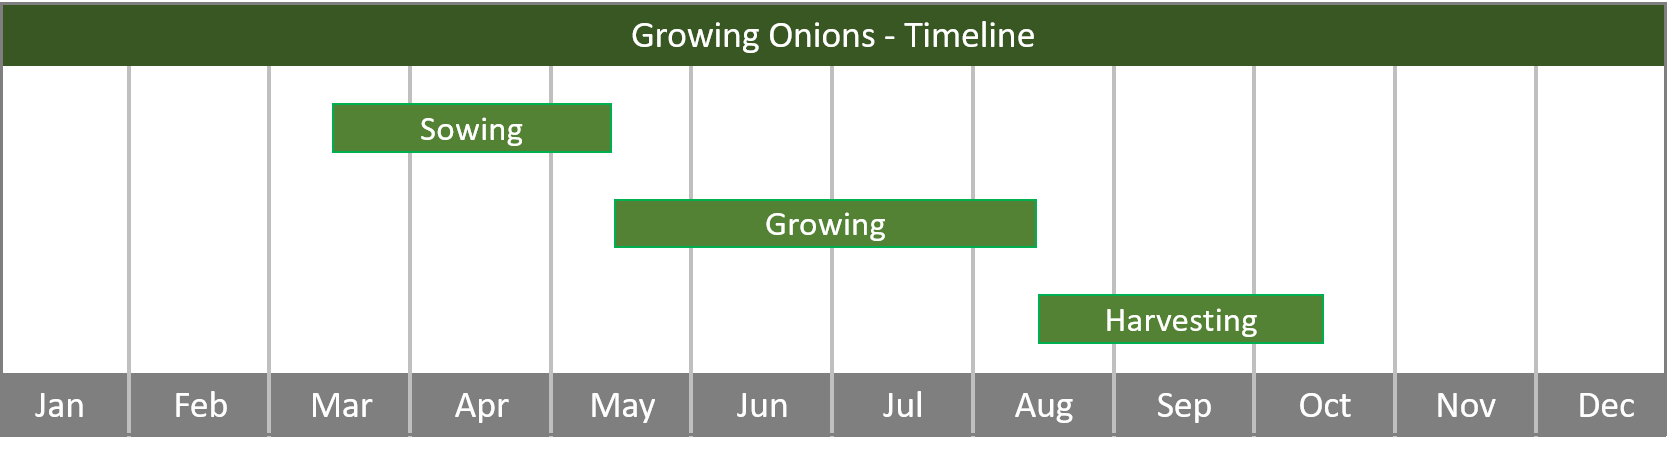 how to grow onions from seed to harvest timeline